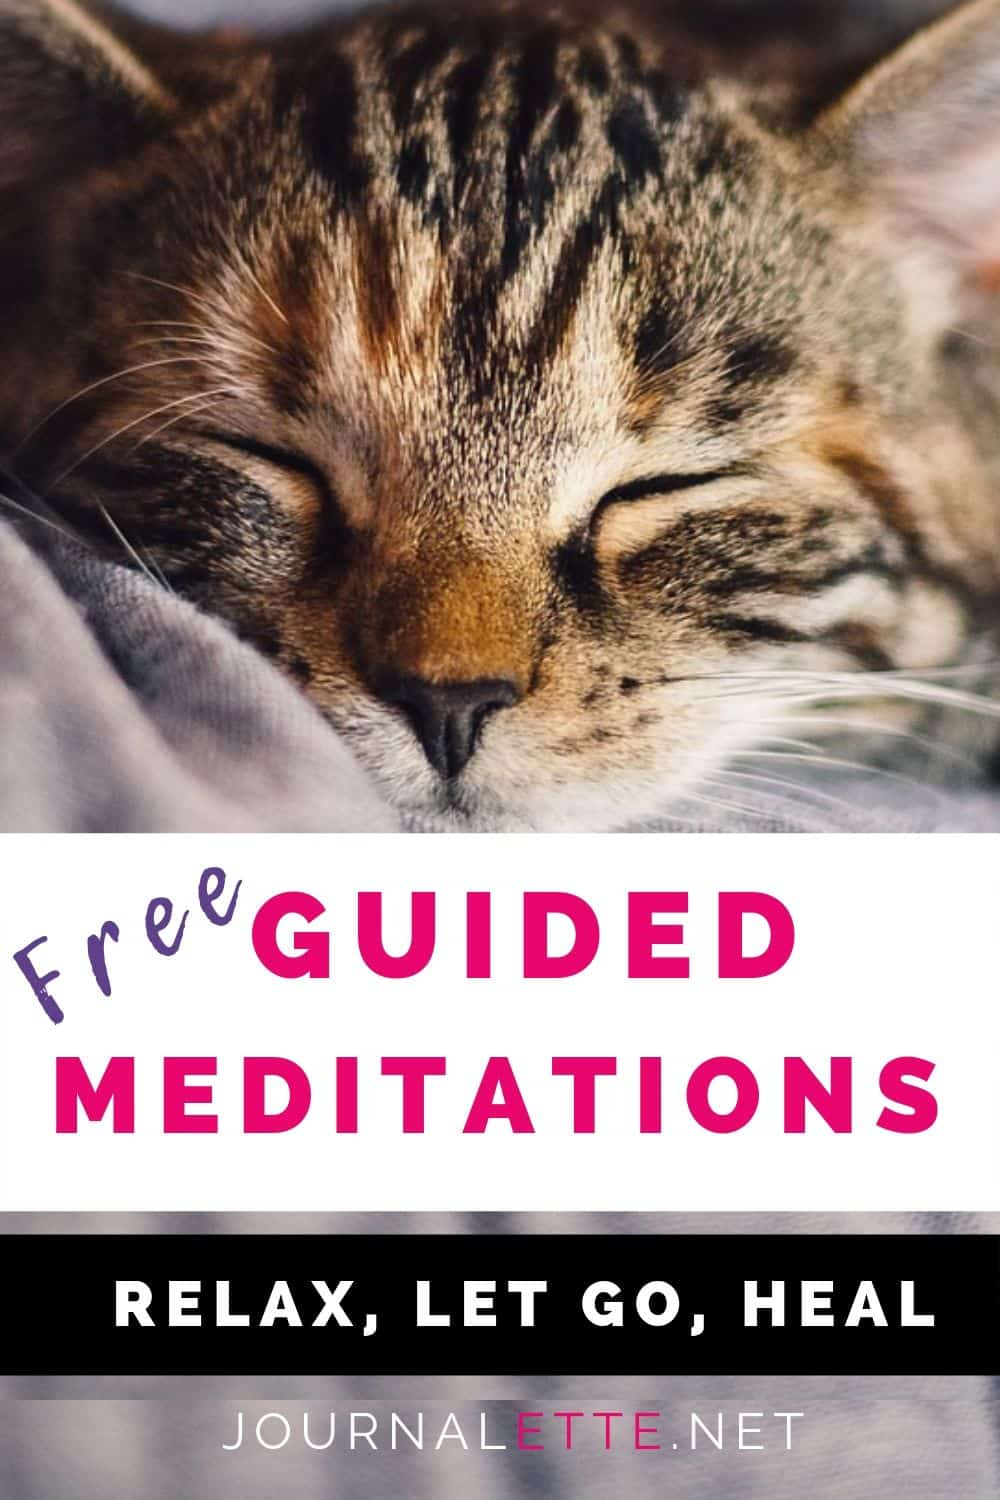 image of cat with text overlay free guided meditations relax let go heal